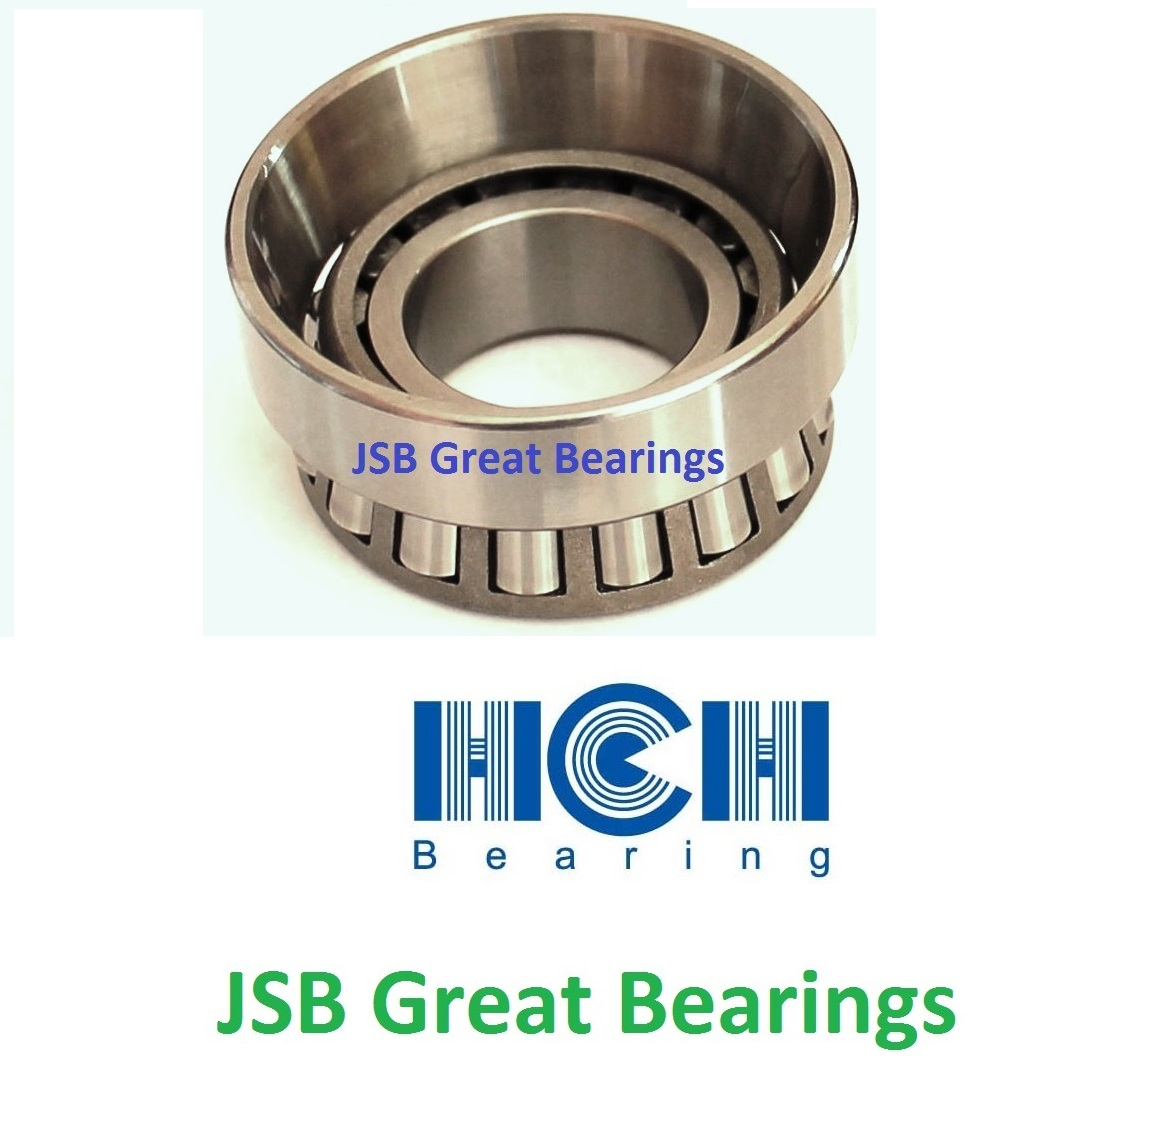 L44643/L44610 tapered roller bearing set (cup & cone) bearings L44643/10